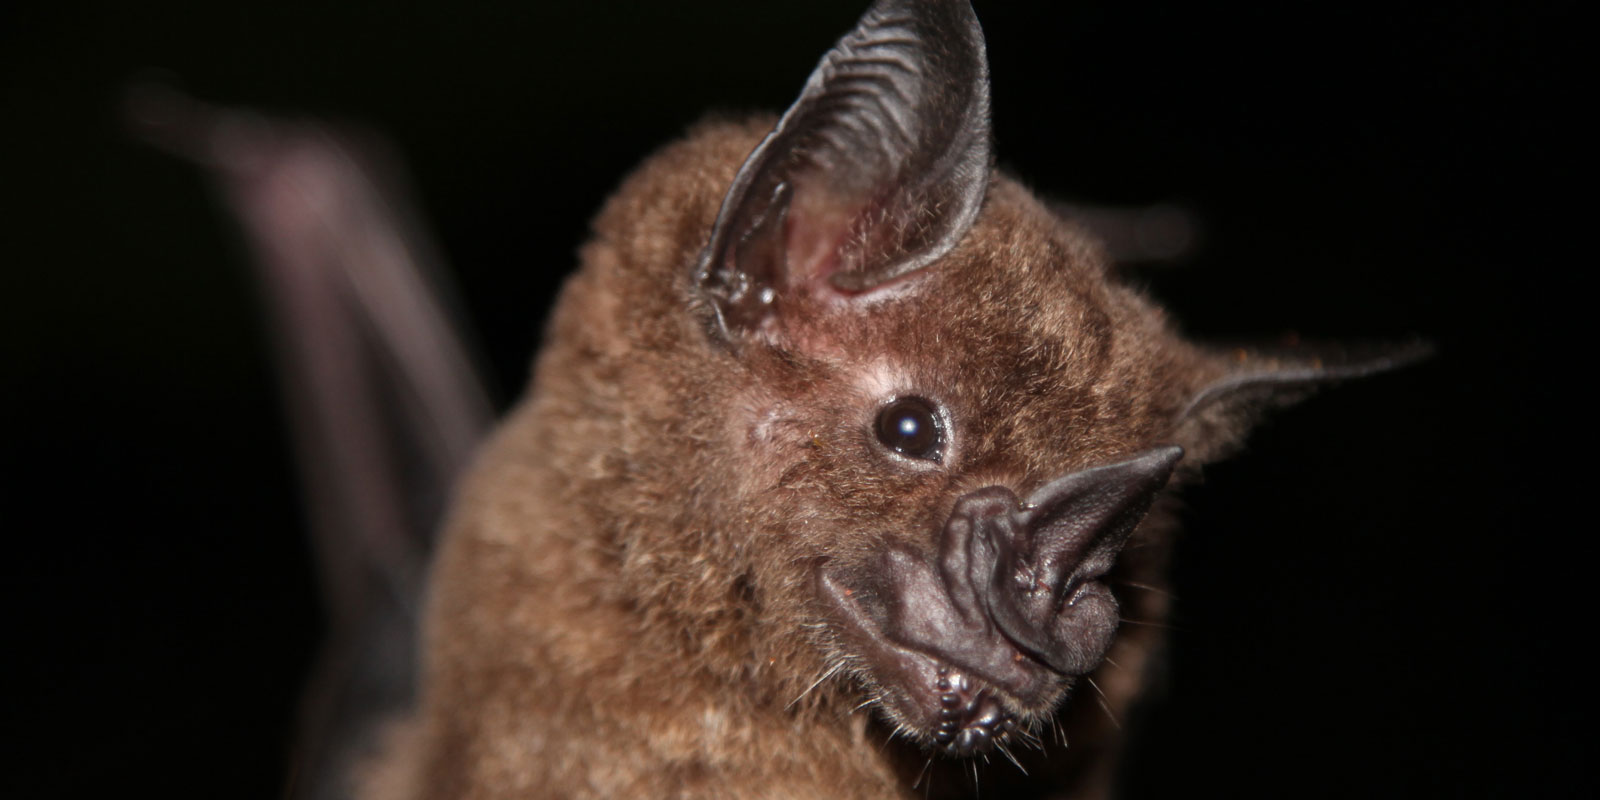 A close up view of the greater spear-nosed bat